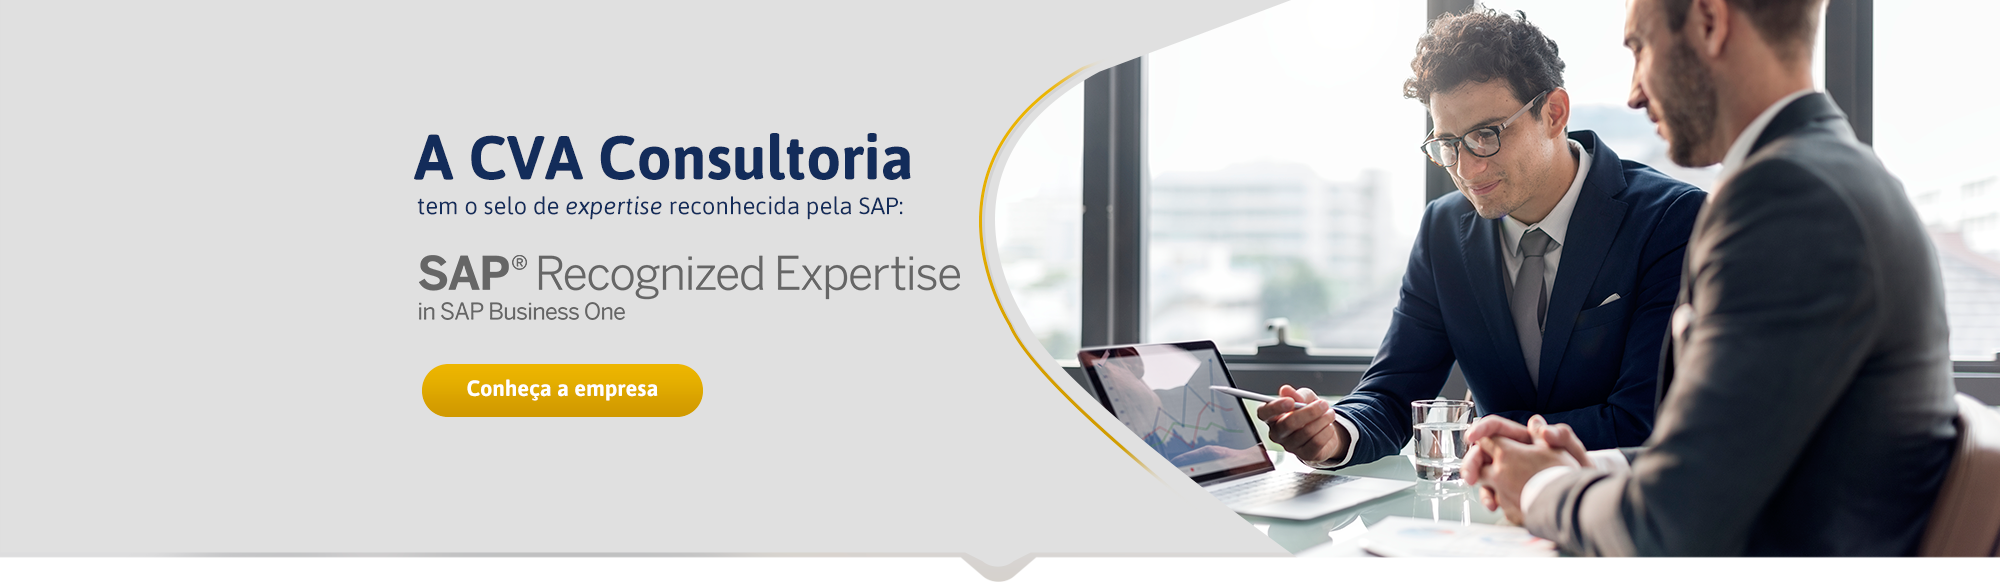 CVA Consultoria – SAP Recognized Expertise